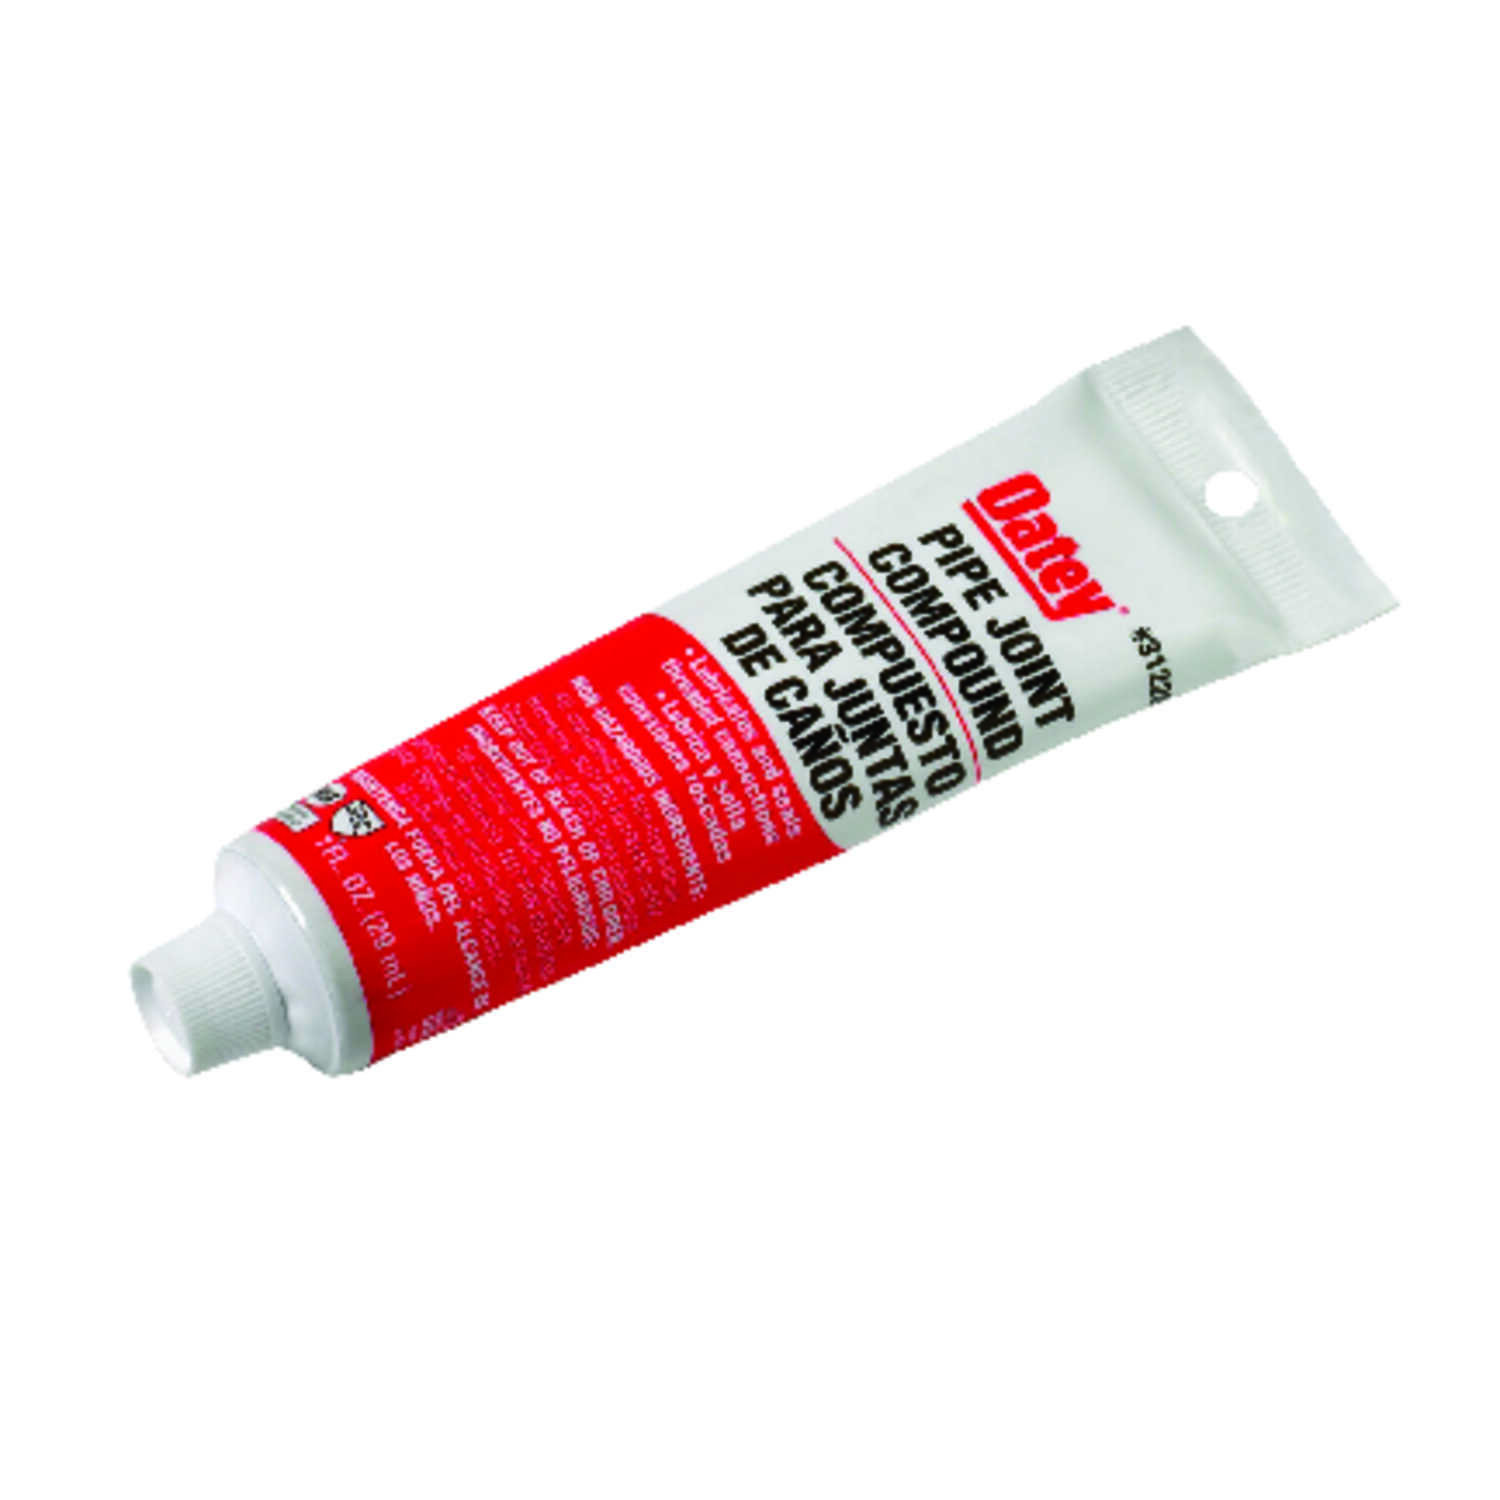 Oatey Gray Pipe Joint Compound 1 oz  - Ace Hardware